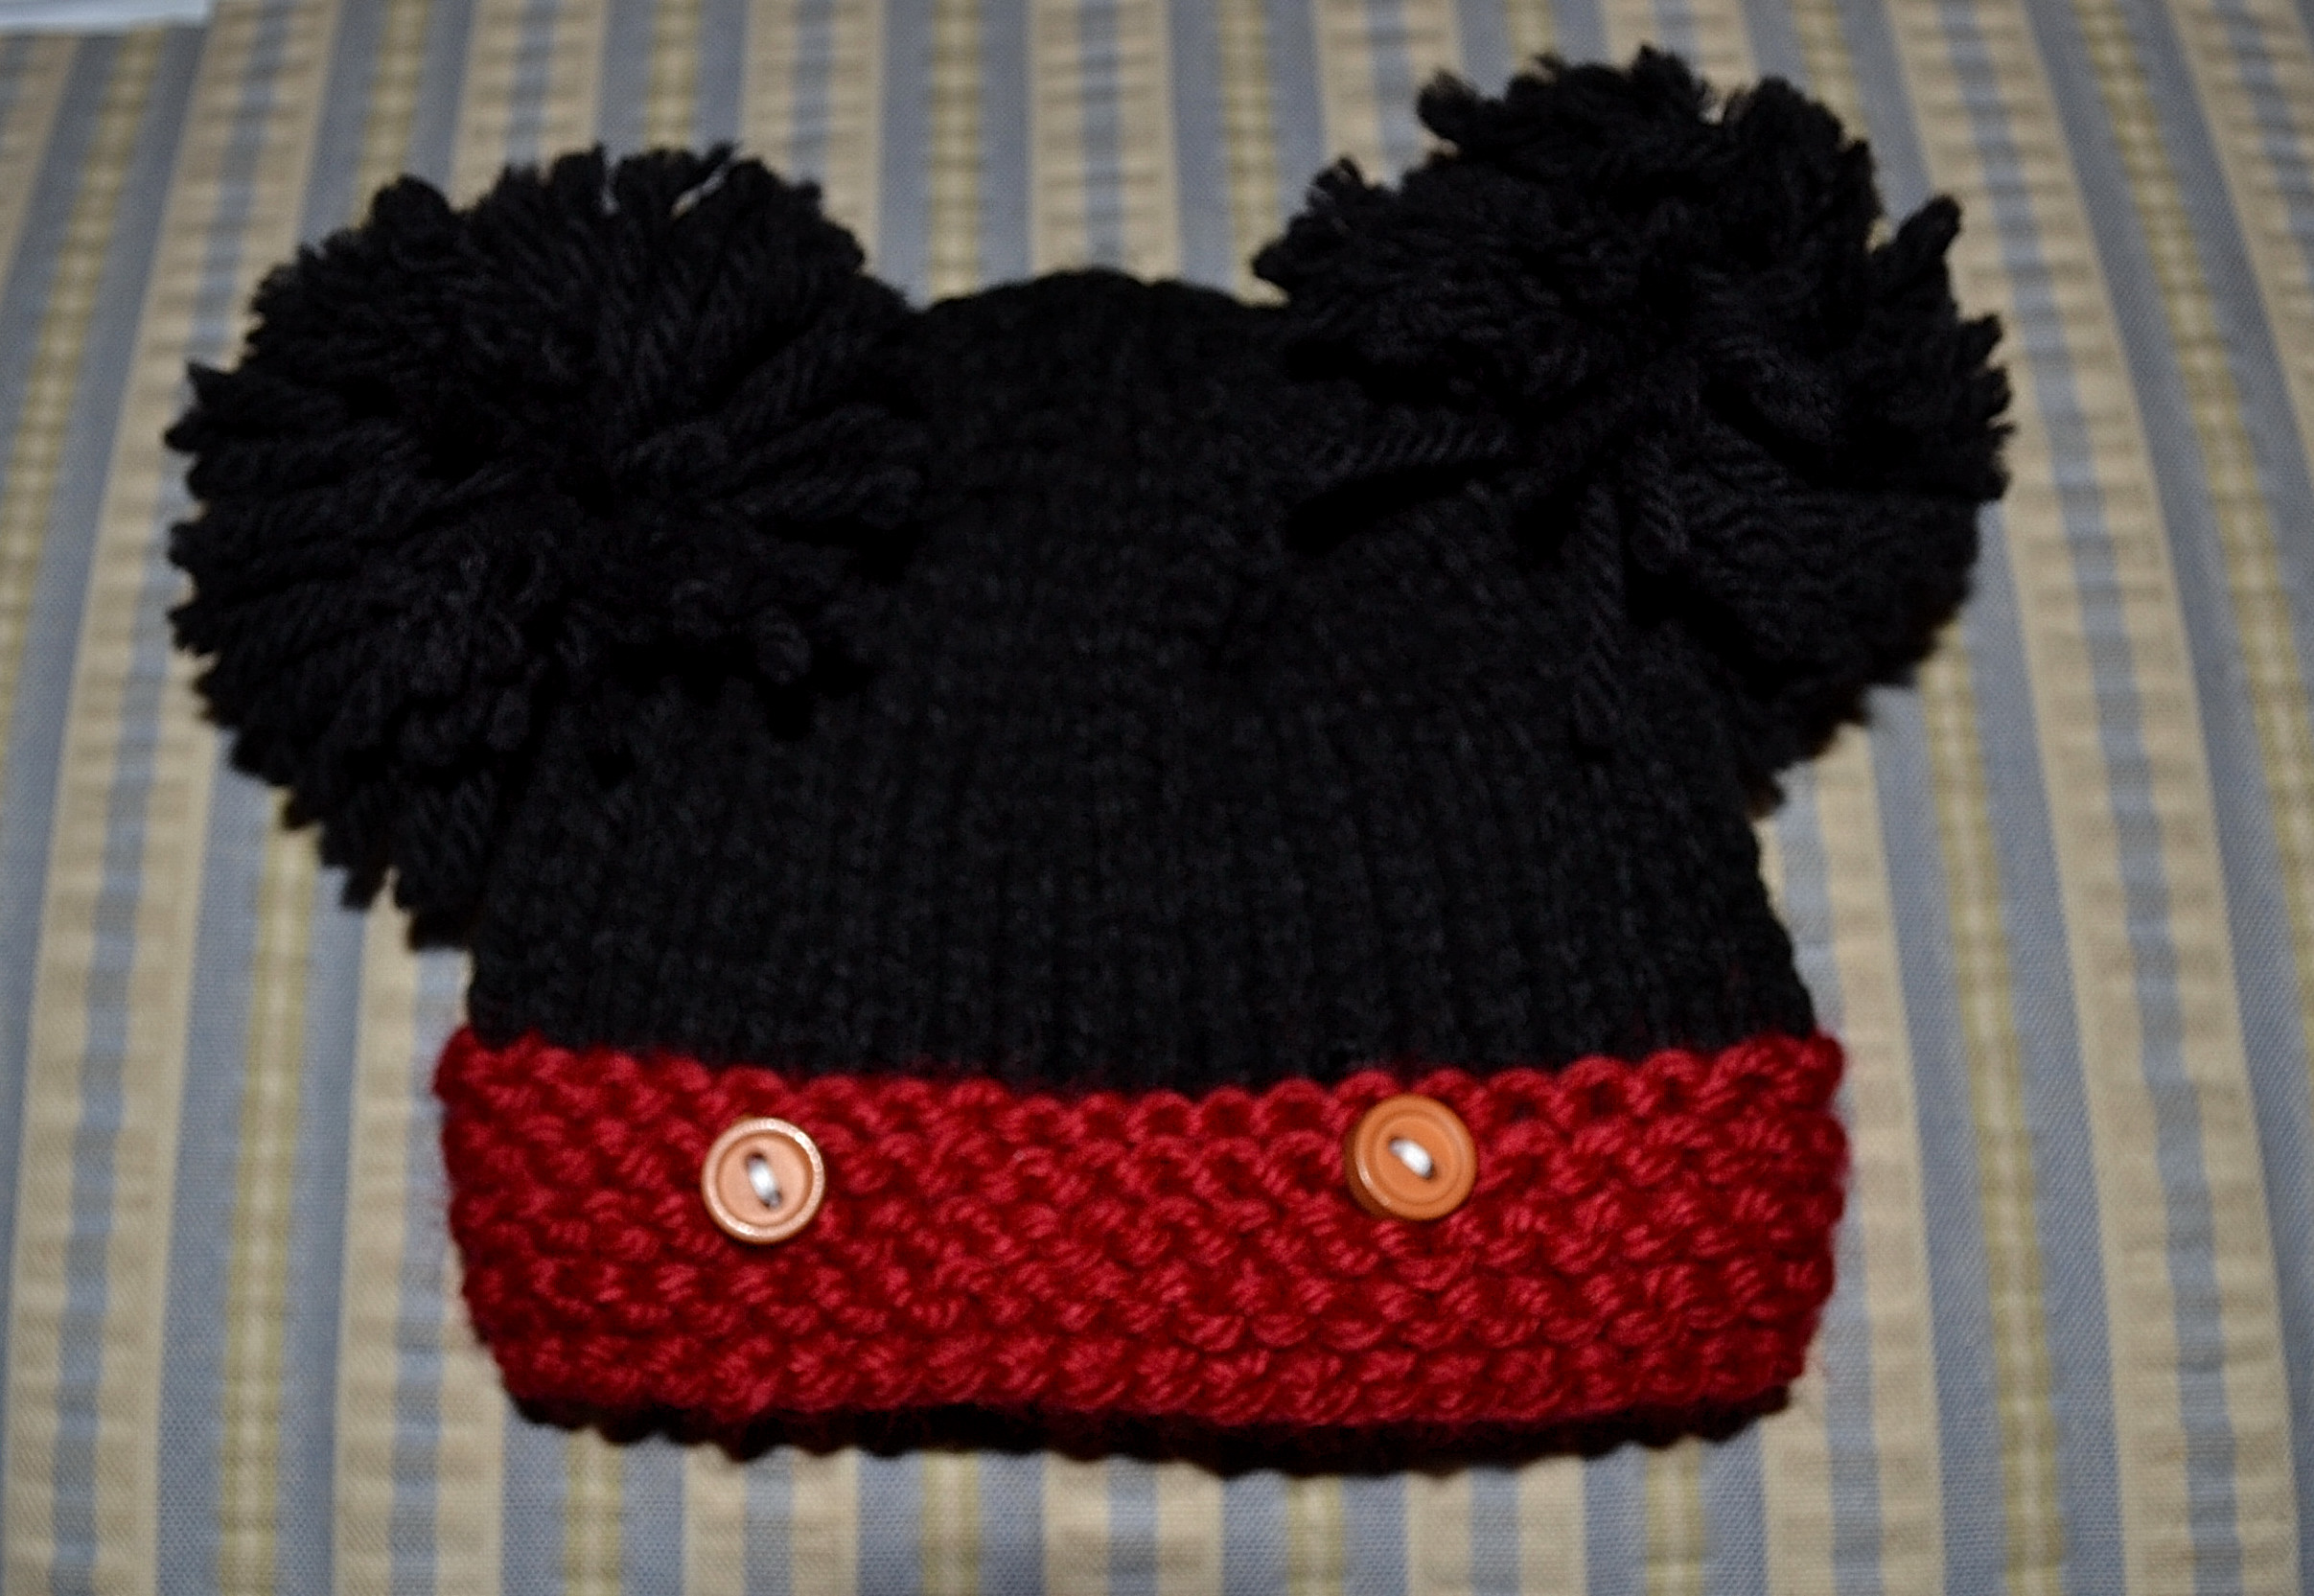 Mickey Mouse Knit Hat Patterns A Knitting Blog